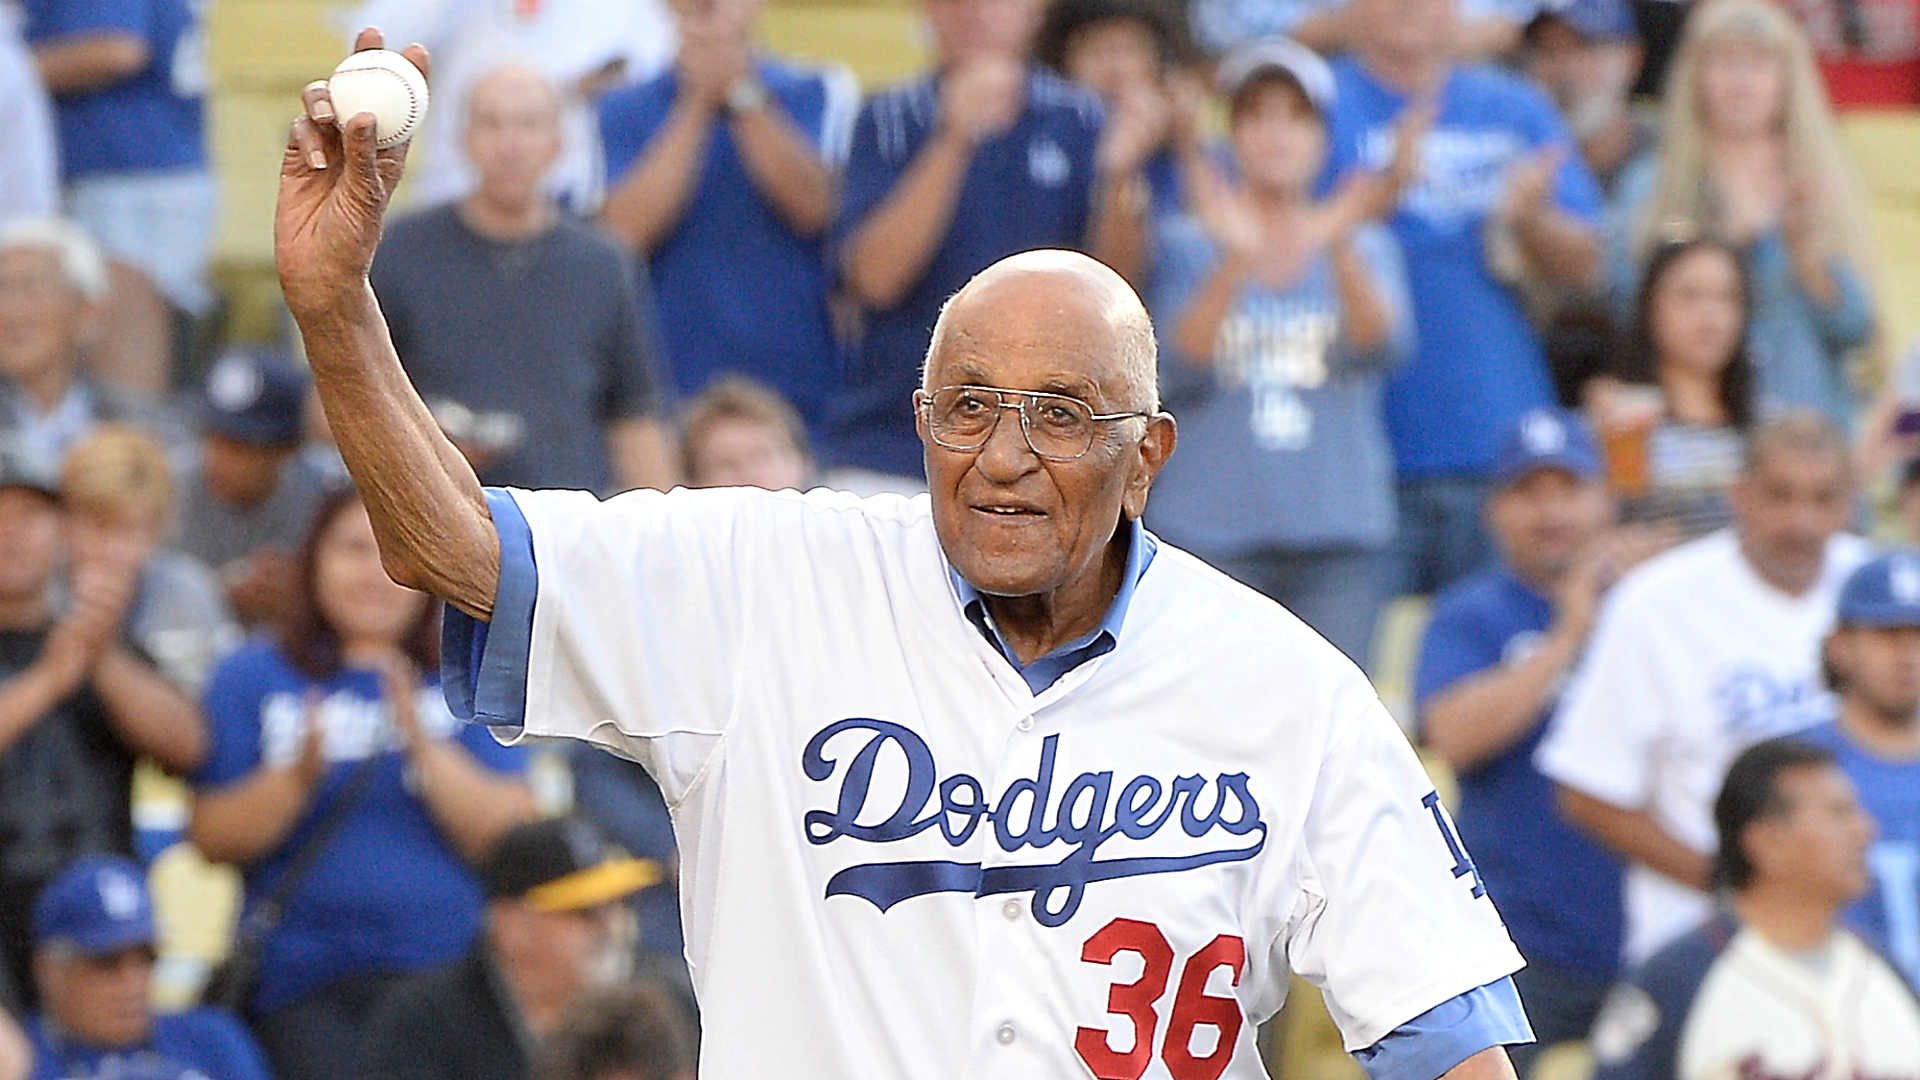 Baseball loses another great, with the death of Don Newcombe